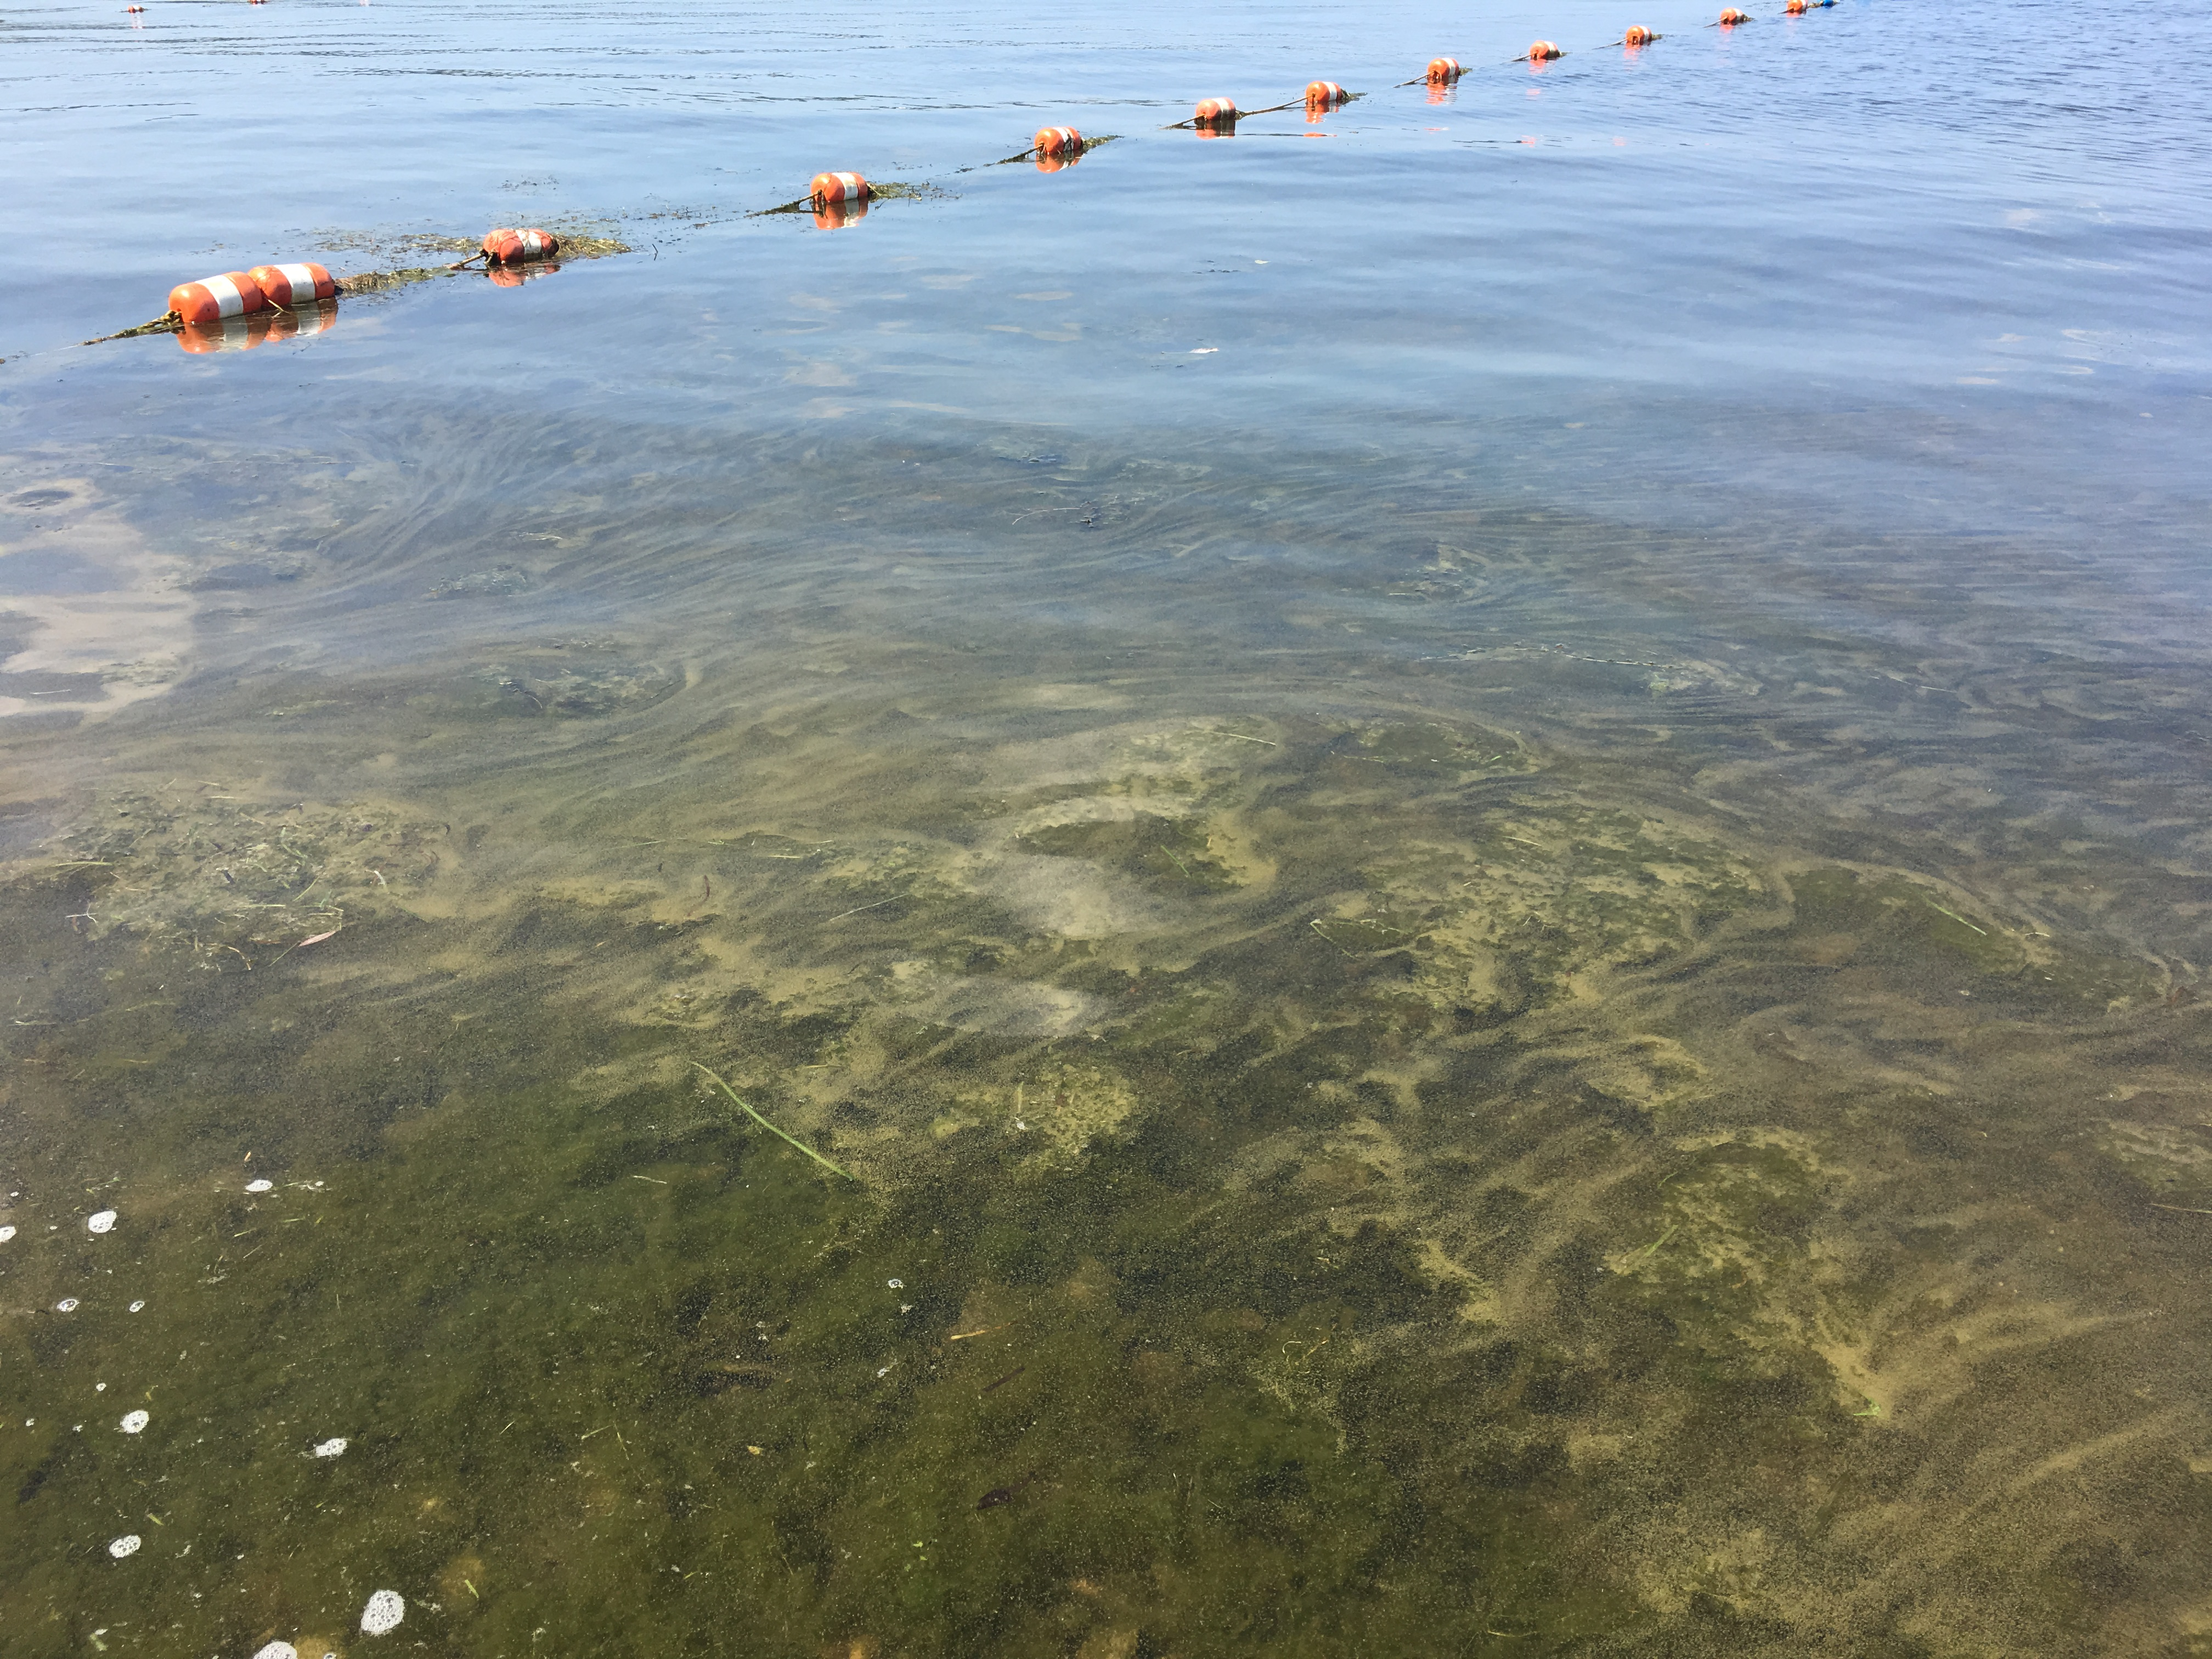 A bloom on Chautauqua Lake in the early stages. This bloom cleared and returned depending on weather conditions.